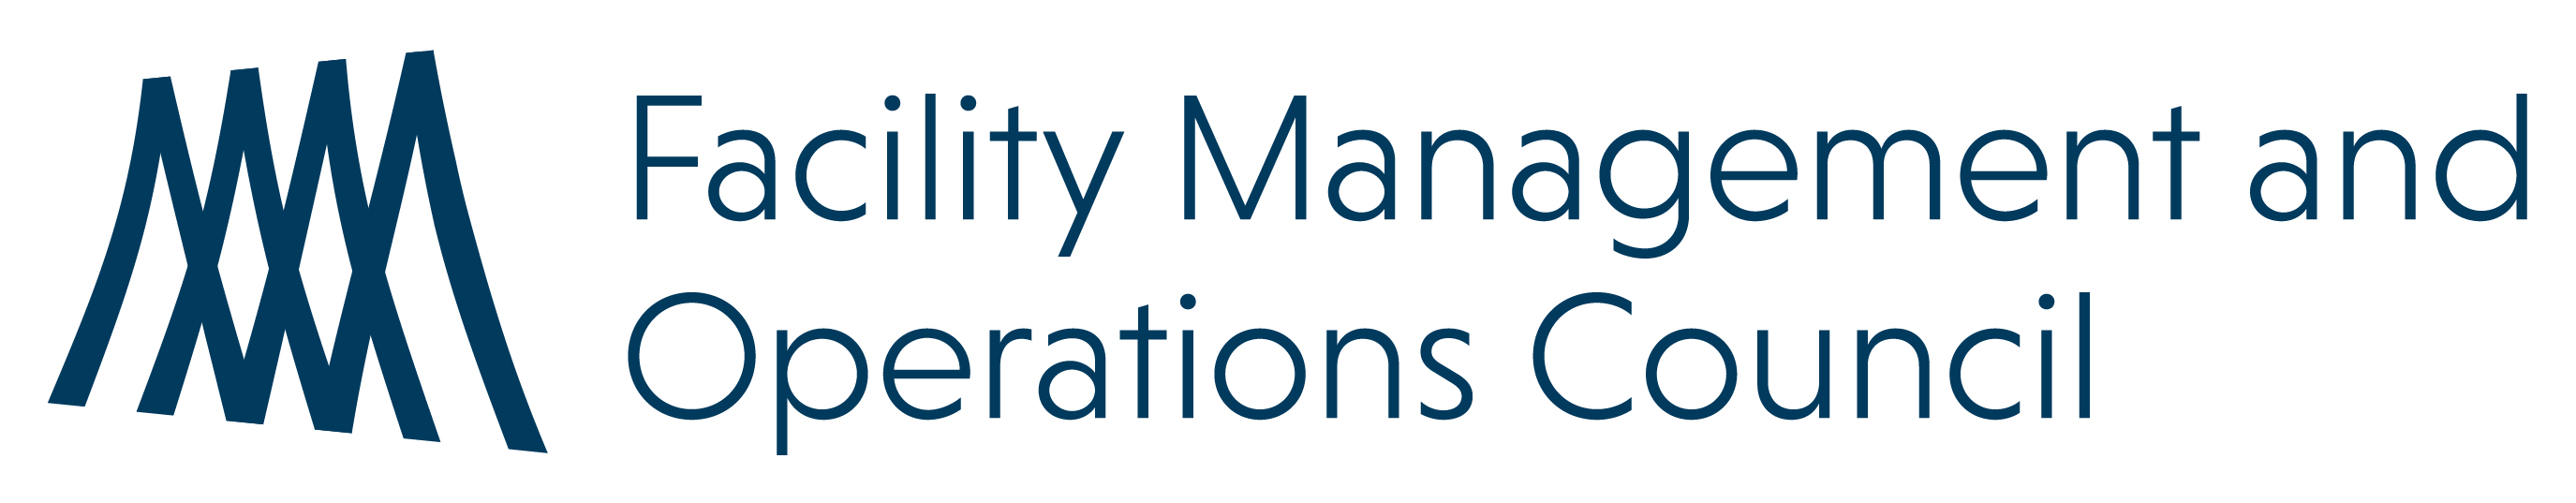 <br /> Facility Management and Operations Council (FMOC)